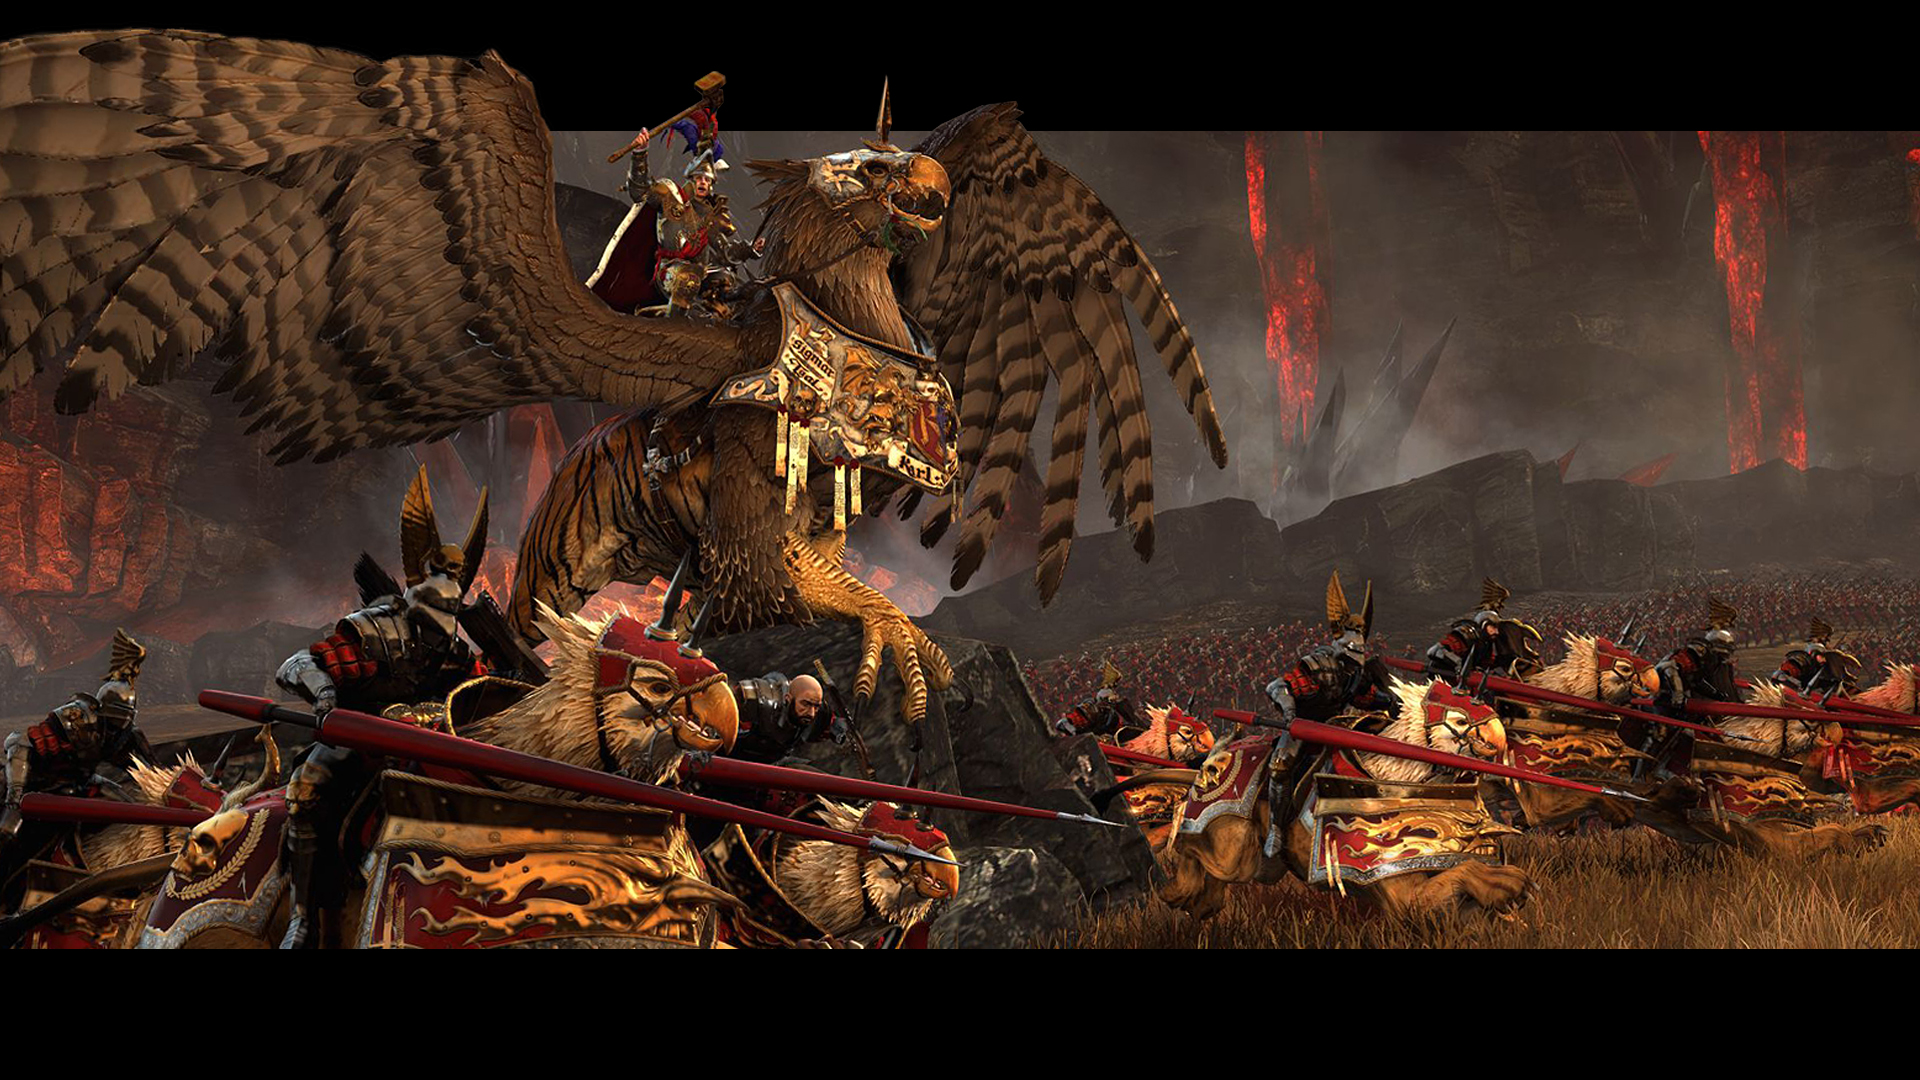 Total War Warhammer Hd Wallpapers 7wallpapersnet